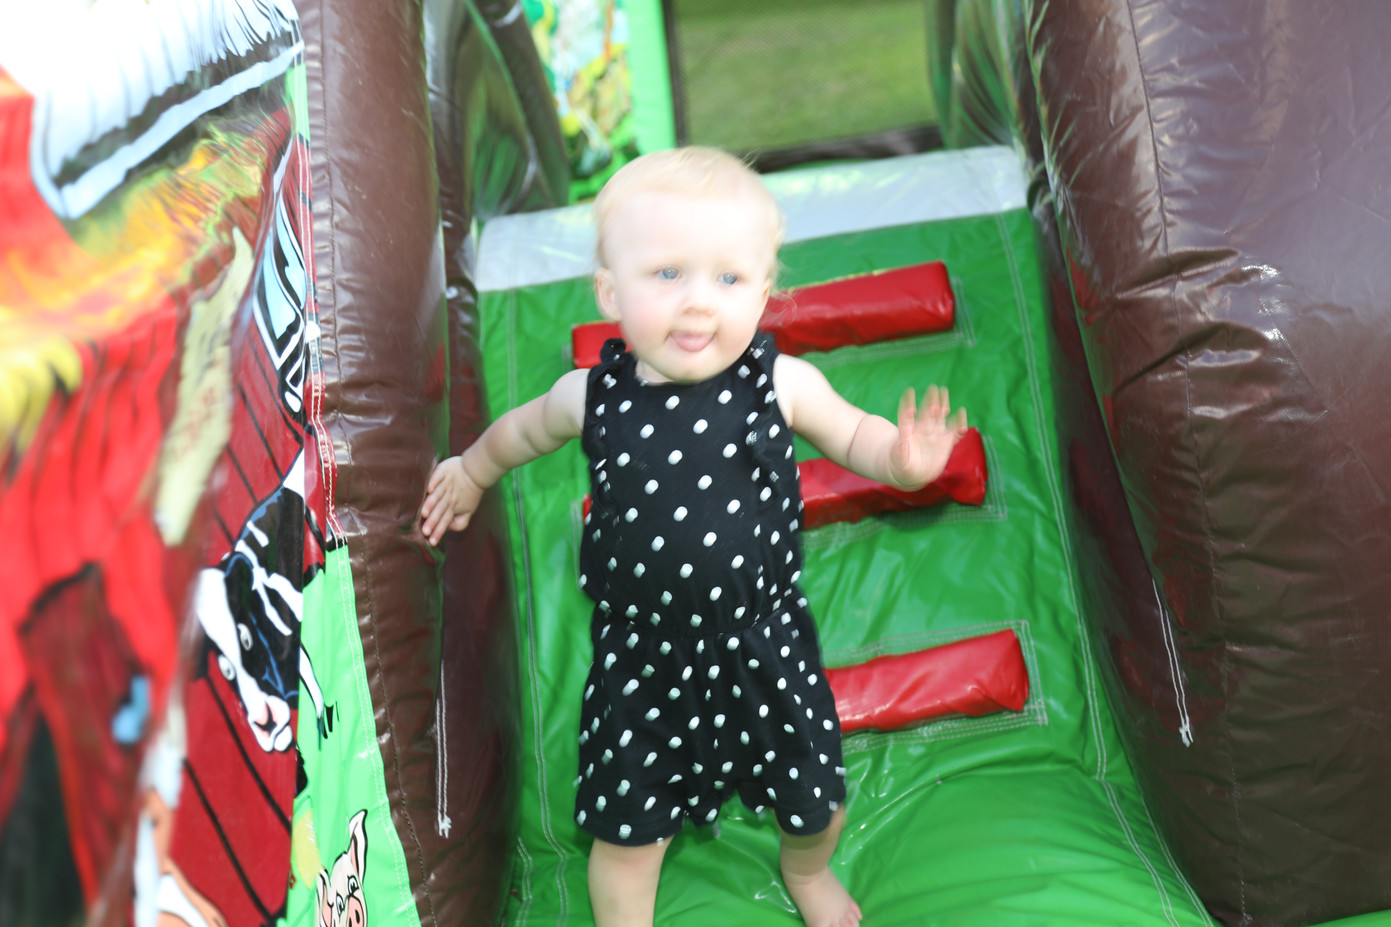 Toddler-At-Bounce-House.JPG